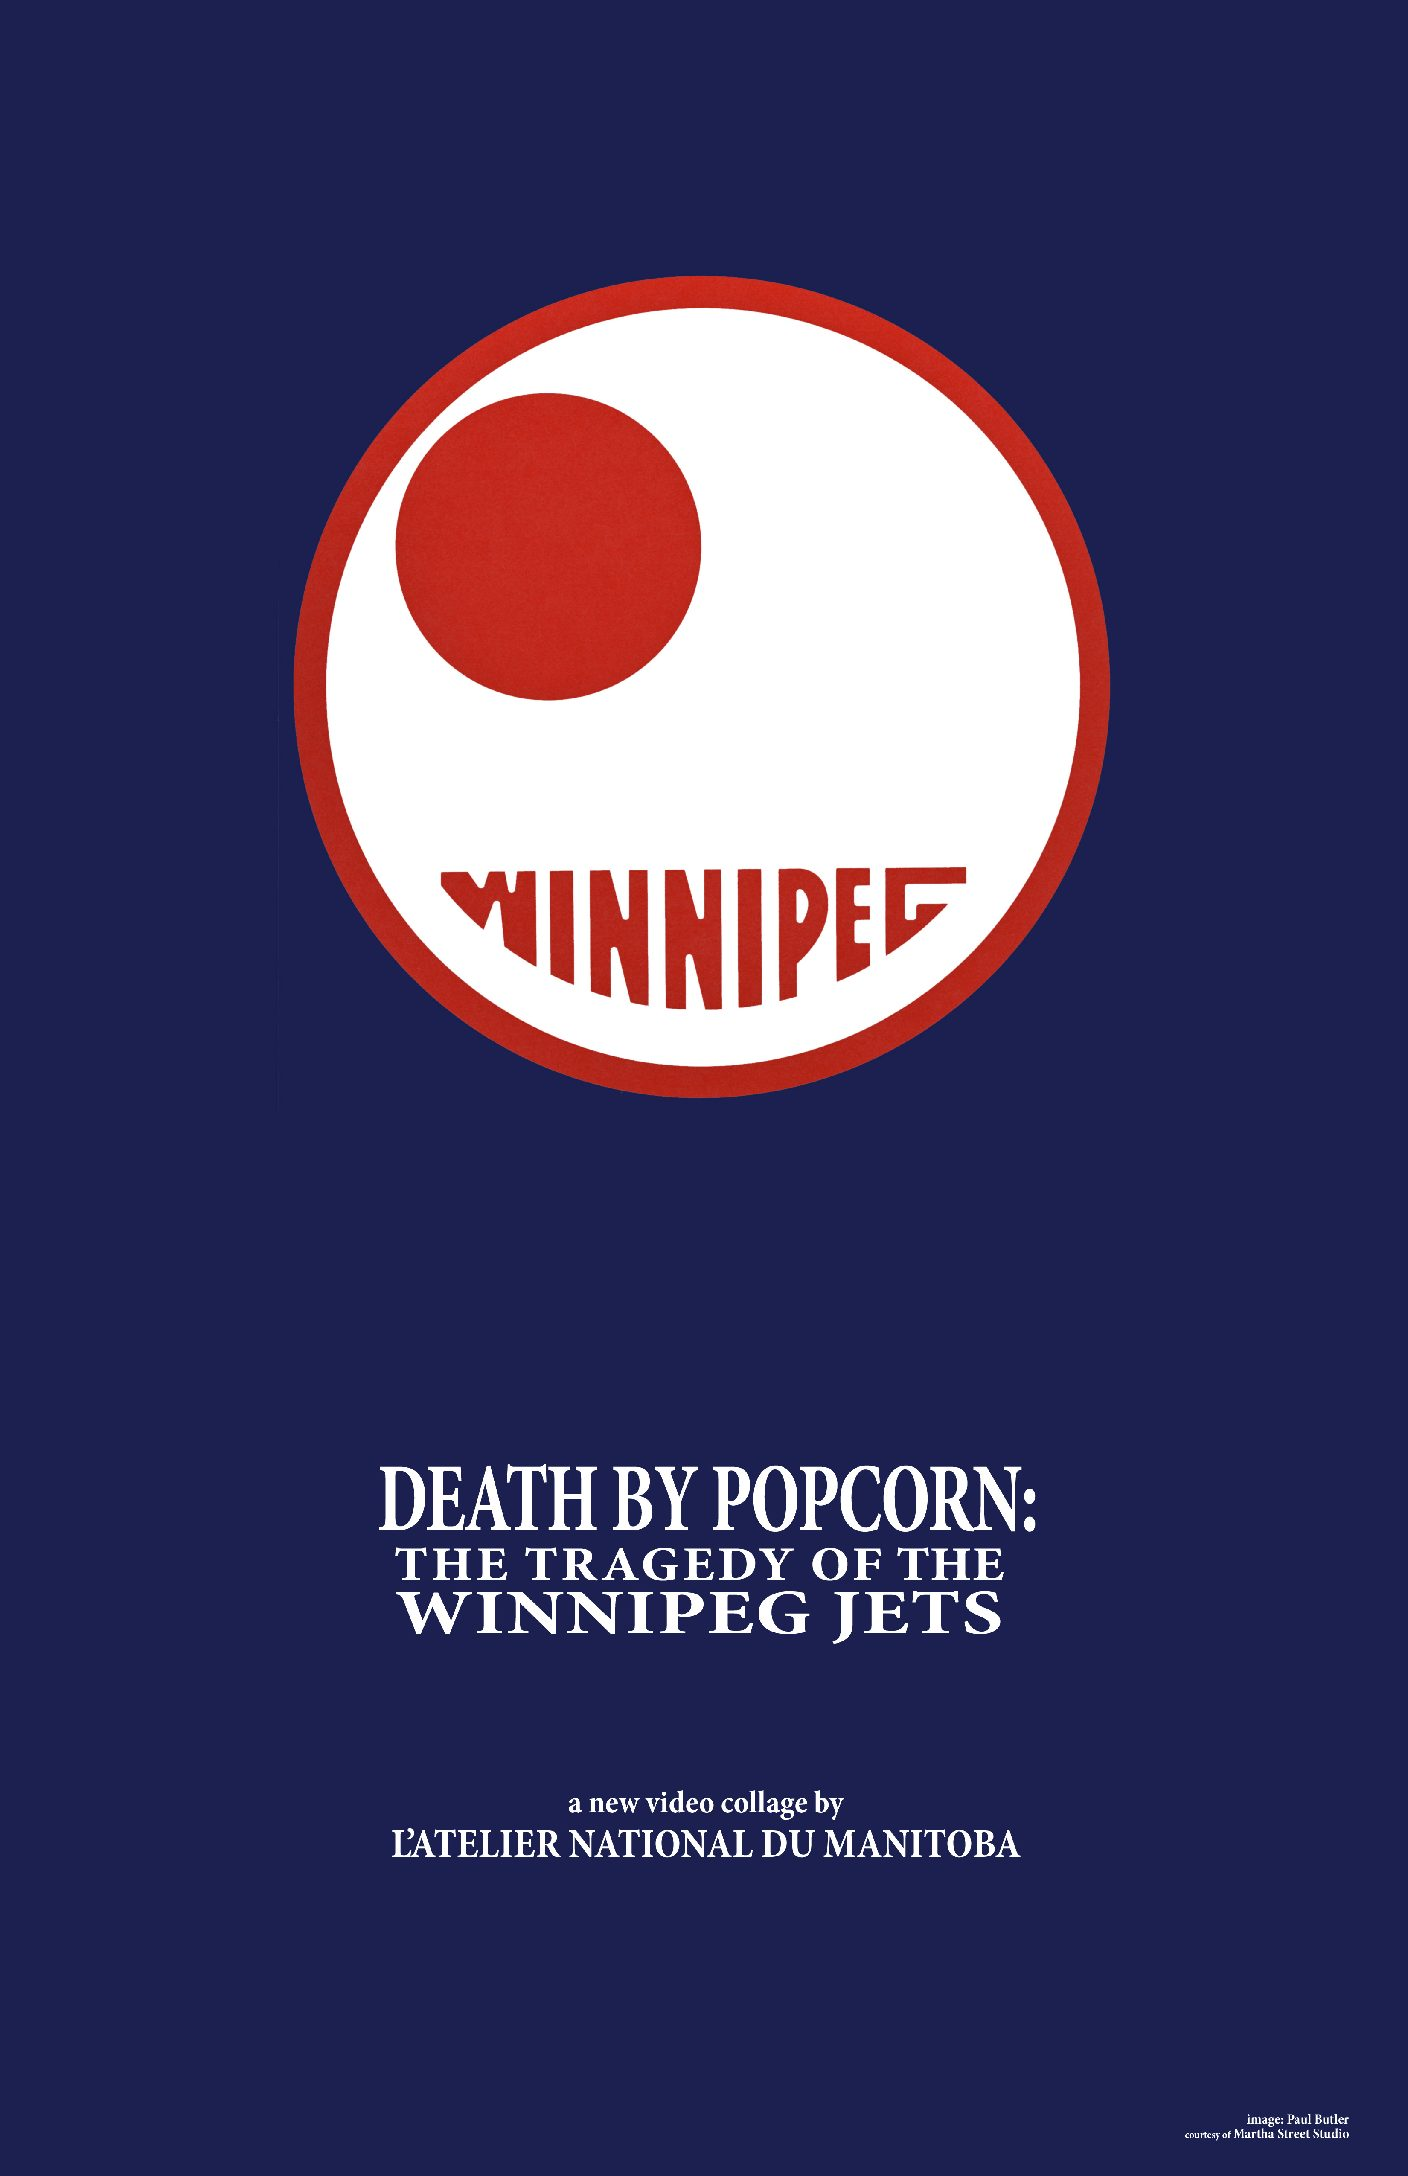 Death By Popcorn: The Tragedy of the Winnipeg Jets